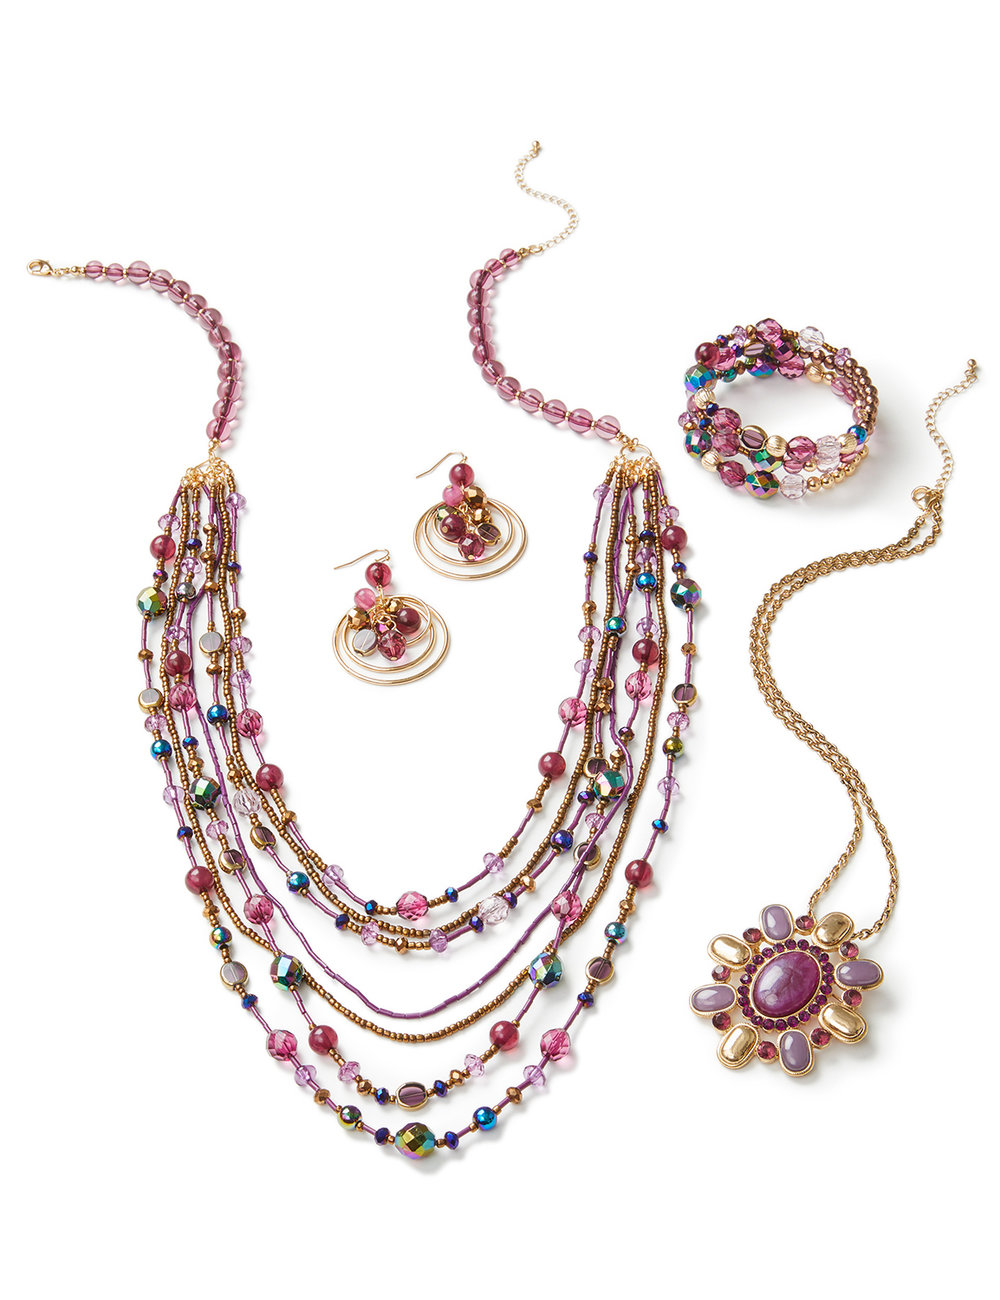 retouched product laydown of multi-beaded necklace, earrings, and bracelet jewelry set on white background